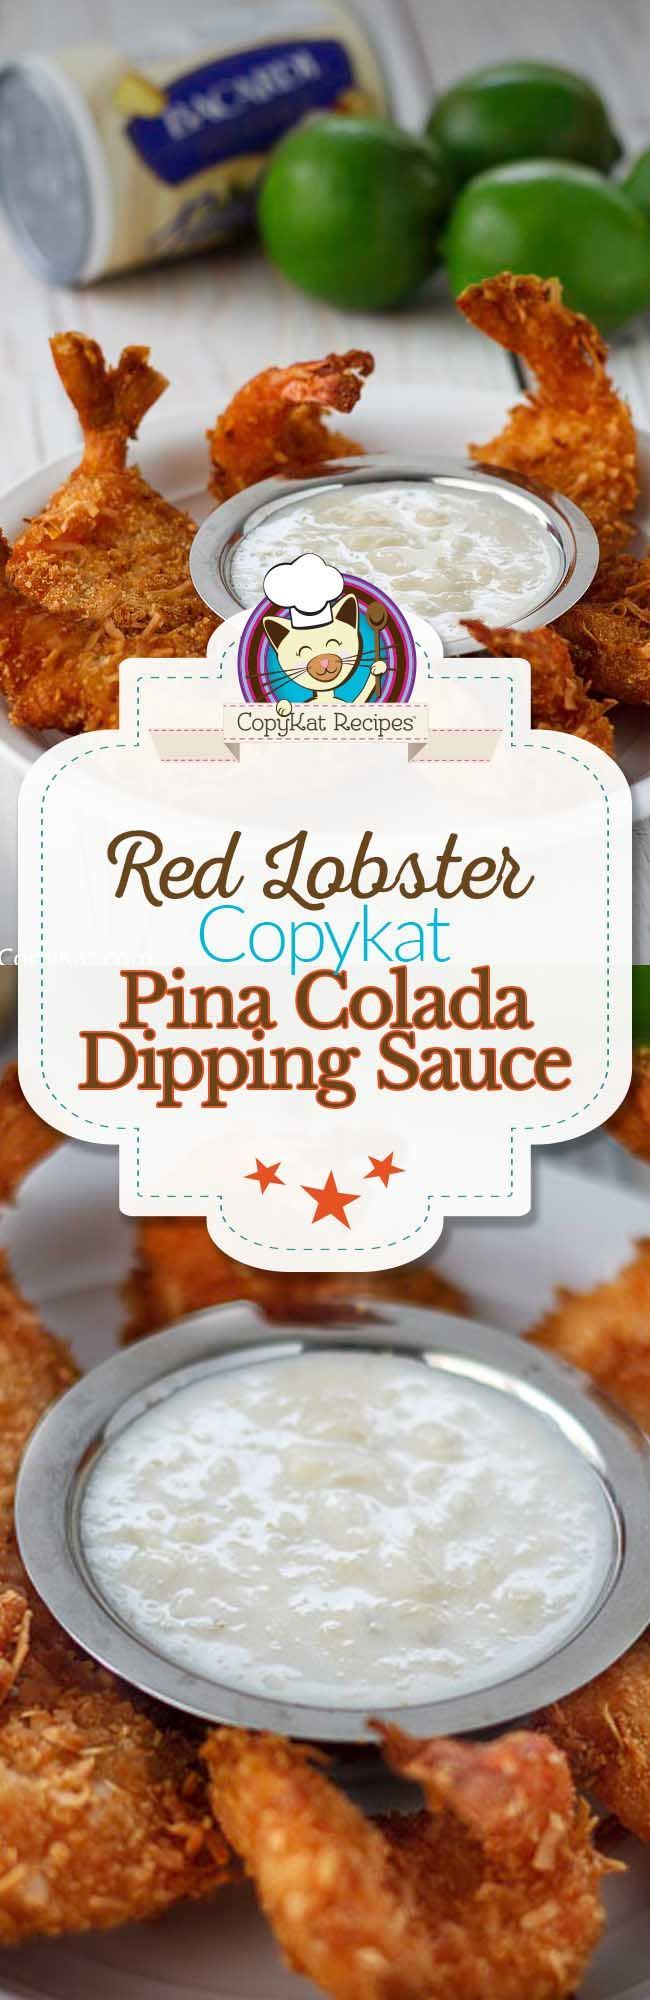 You can make the famous Red Lobster Pina Colada dipping sauce at home with this copycat recipe.